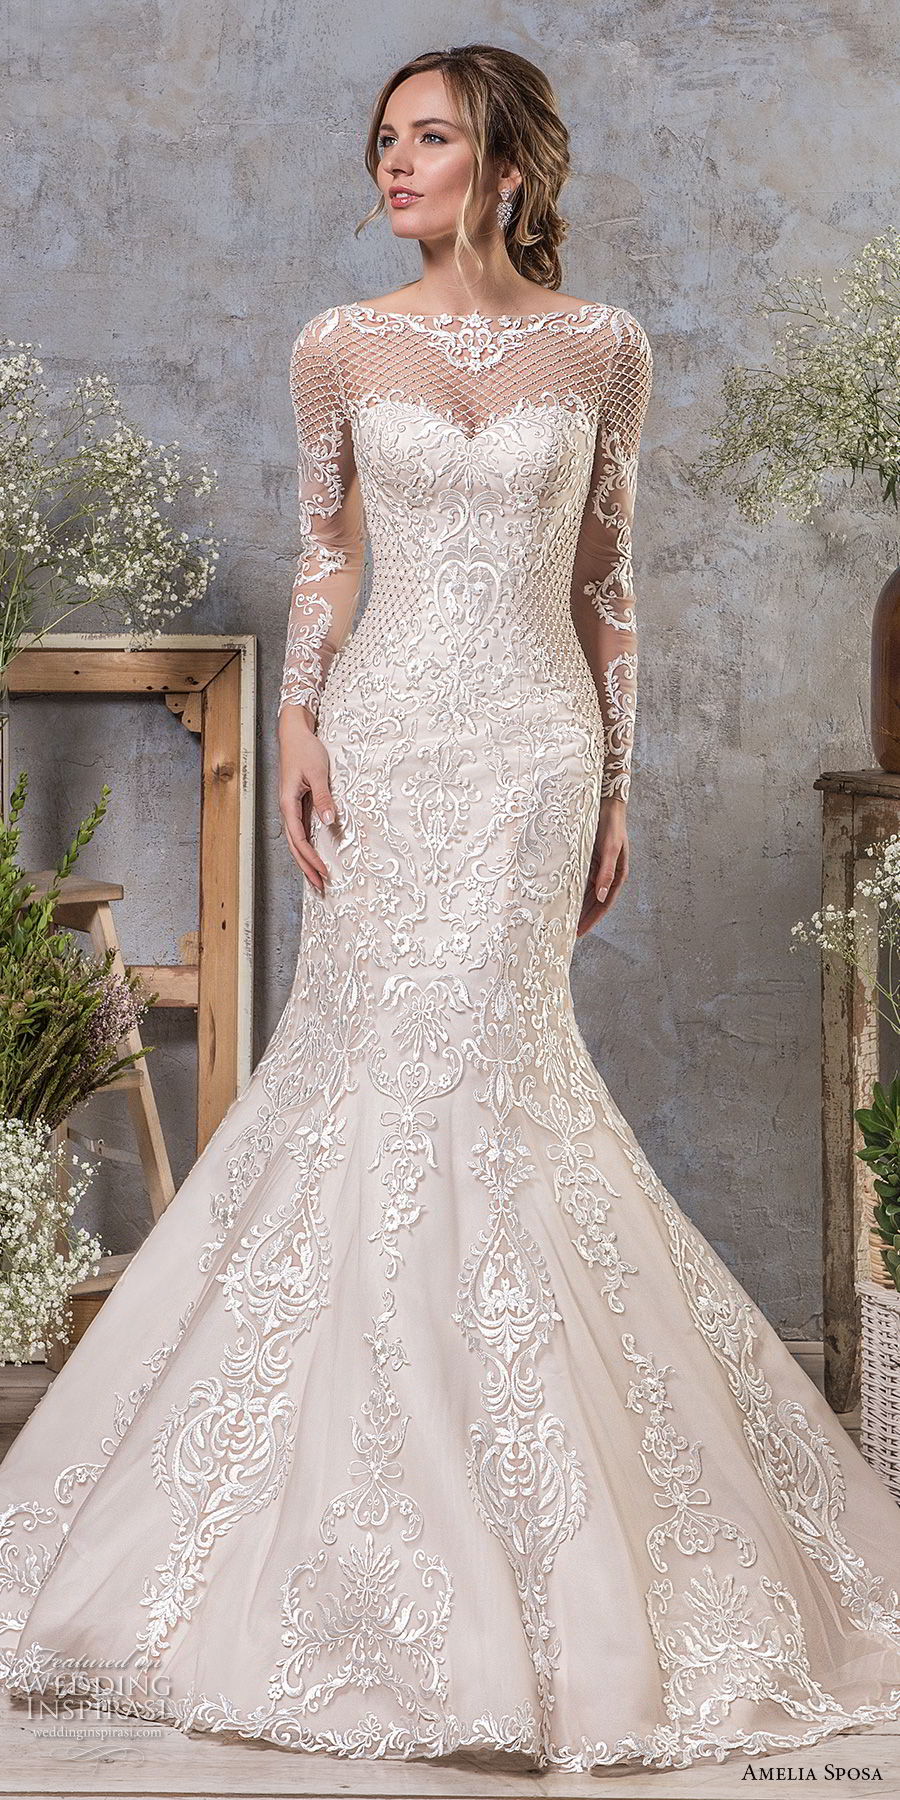 amelia sposa fall 2018 bridal long sleeves illusion bateau sweetheart neckline full embellishment elegant mermaid wedding dress sheer lace back sweep train (19) mv